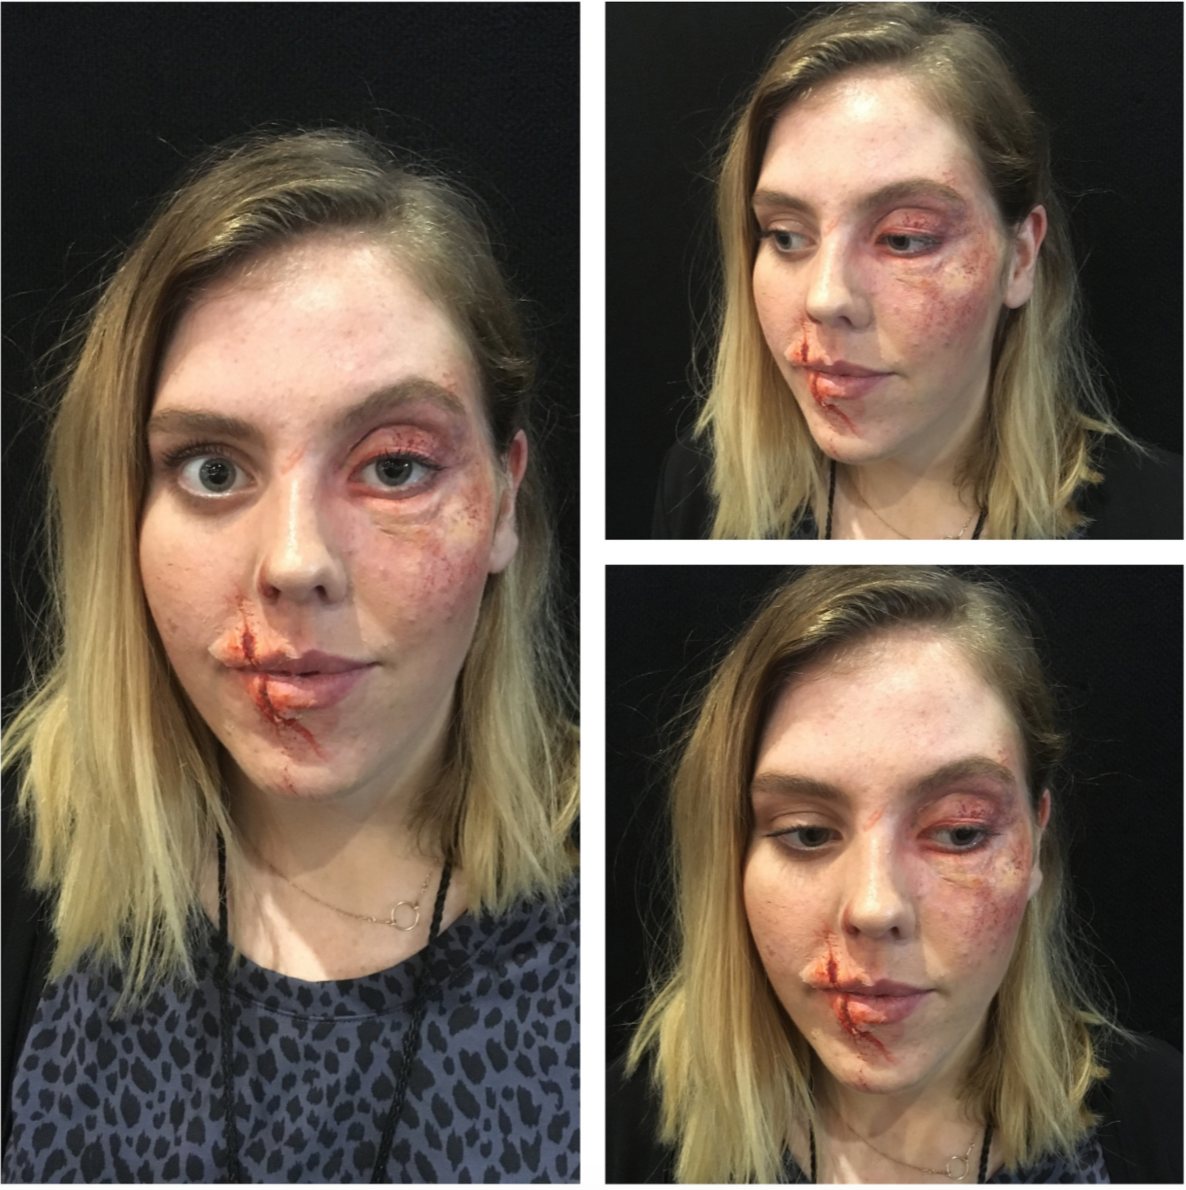 Second half of Day One at Sydney IMATS 2015....I got to beat up Jess with some pieces from the Got Flesh!?! Fighter Kit. Coloring was a mix of Scotty's Tattoo Palette and Ben Nye Creams makeups.